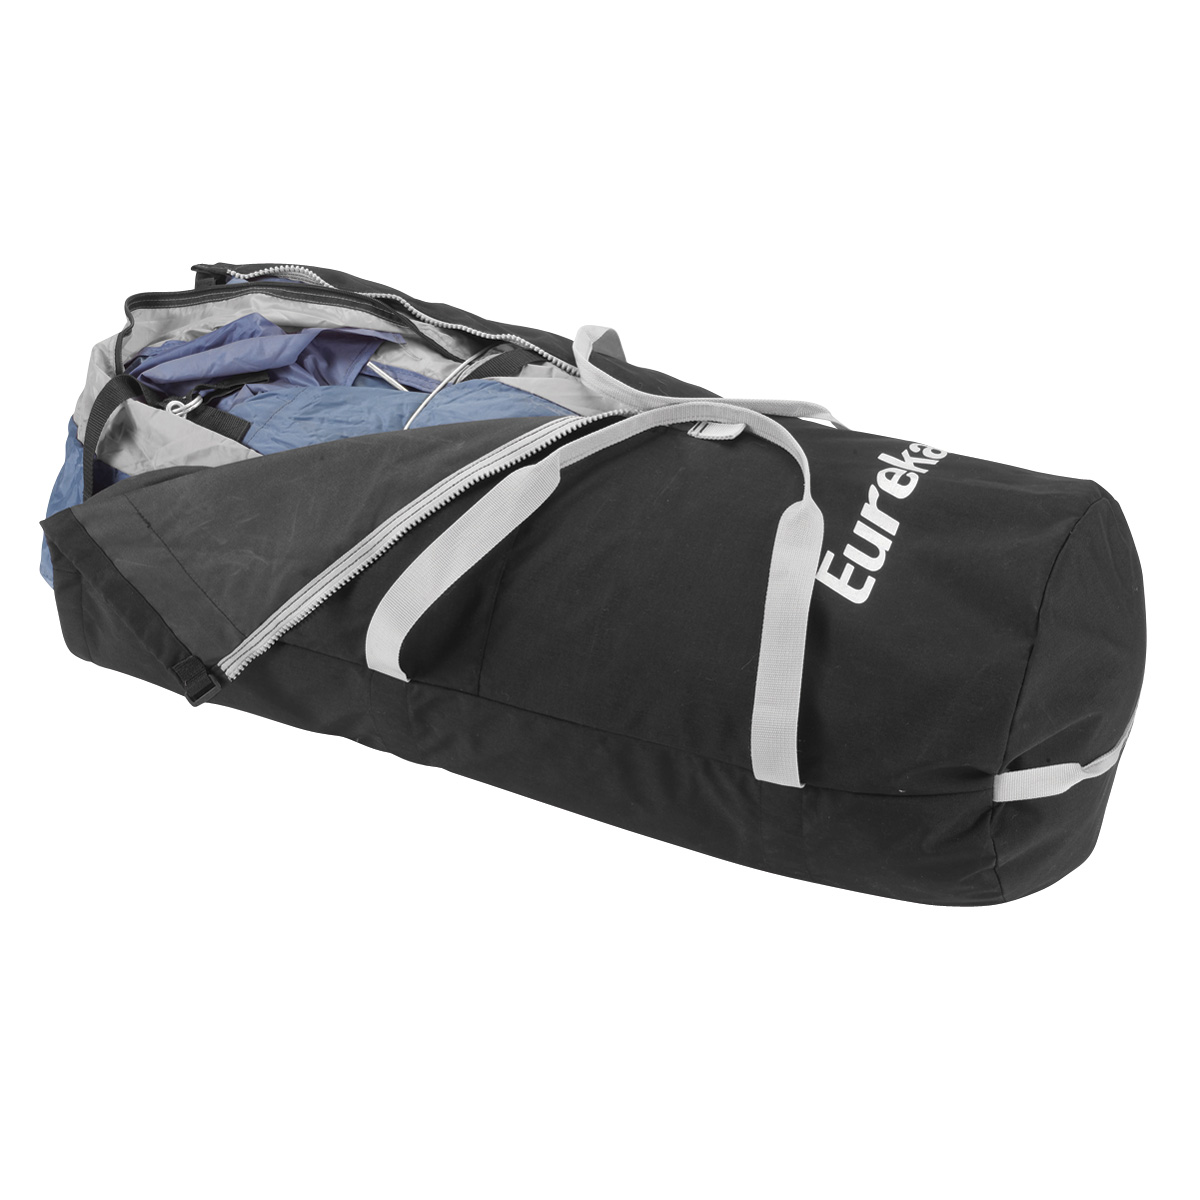 Tent u0026 C& Duffle  sc 1 st  Tents - Johnson Outdoors & 608729_primary.jpg